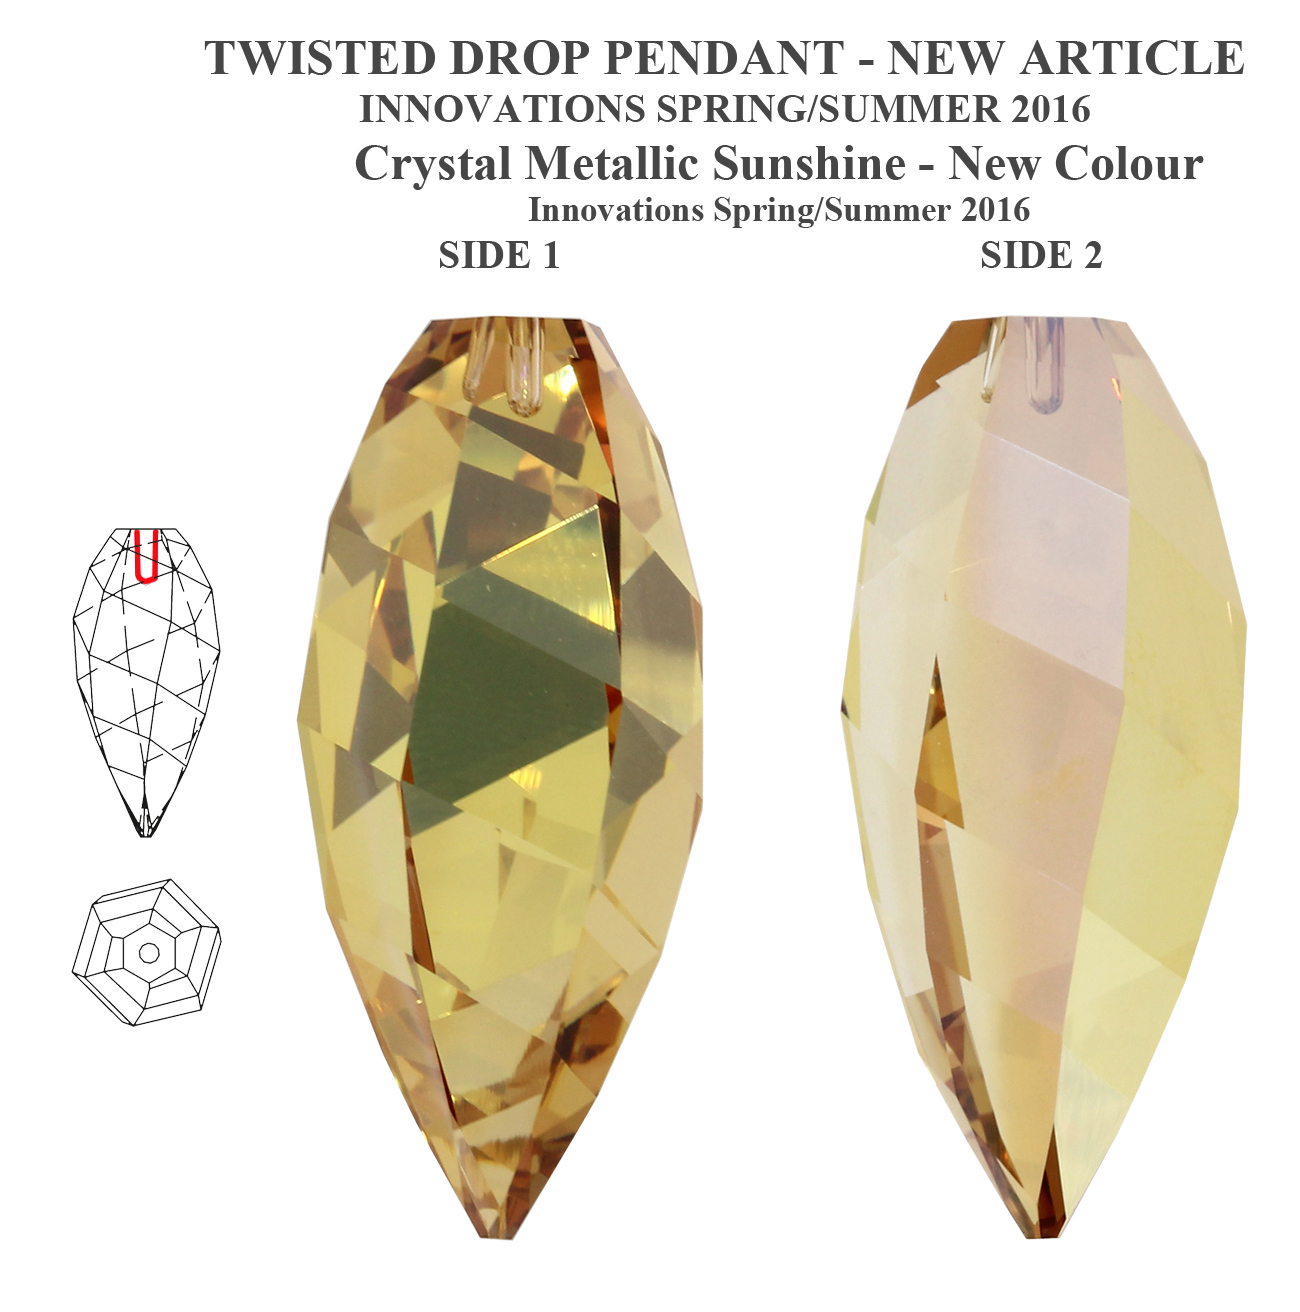 Genuine swarovski 6540 crystal twisted drop pendants many genuine swarovski 6540 crystal twisted drop pendants many aloadofball Choice Image